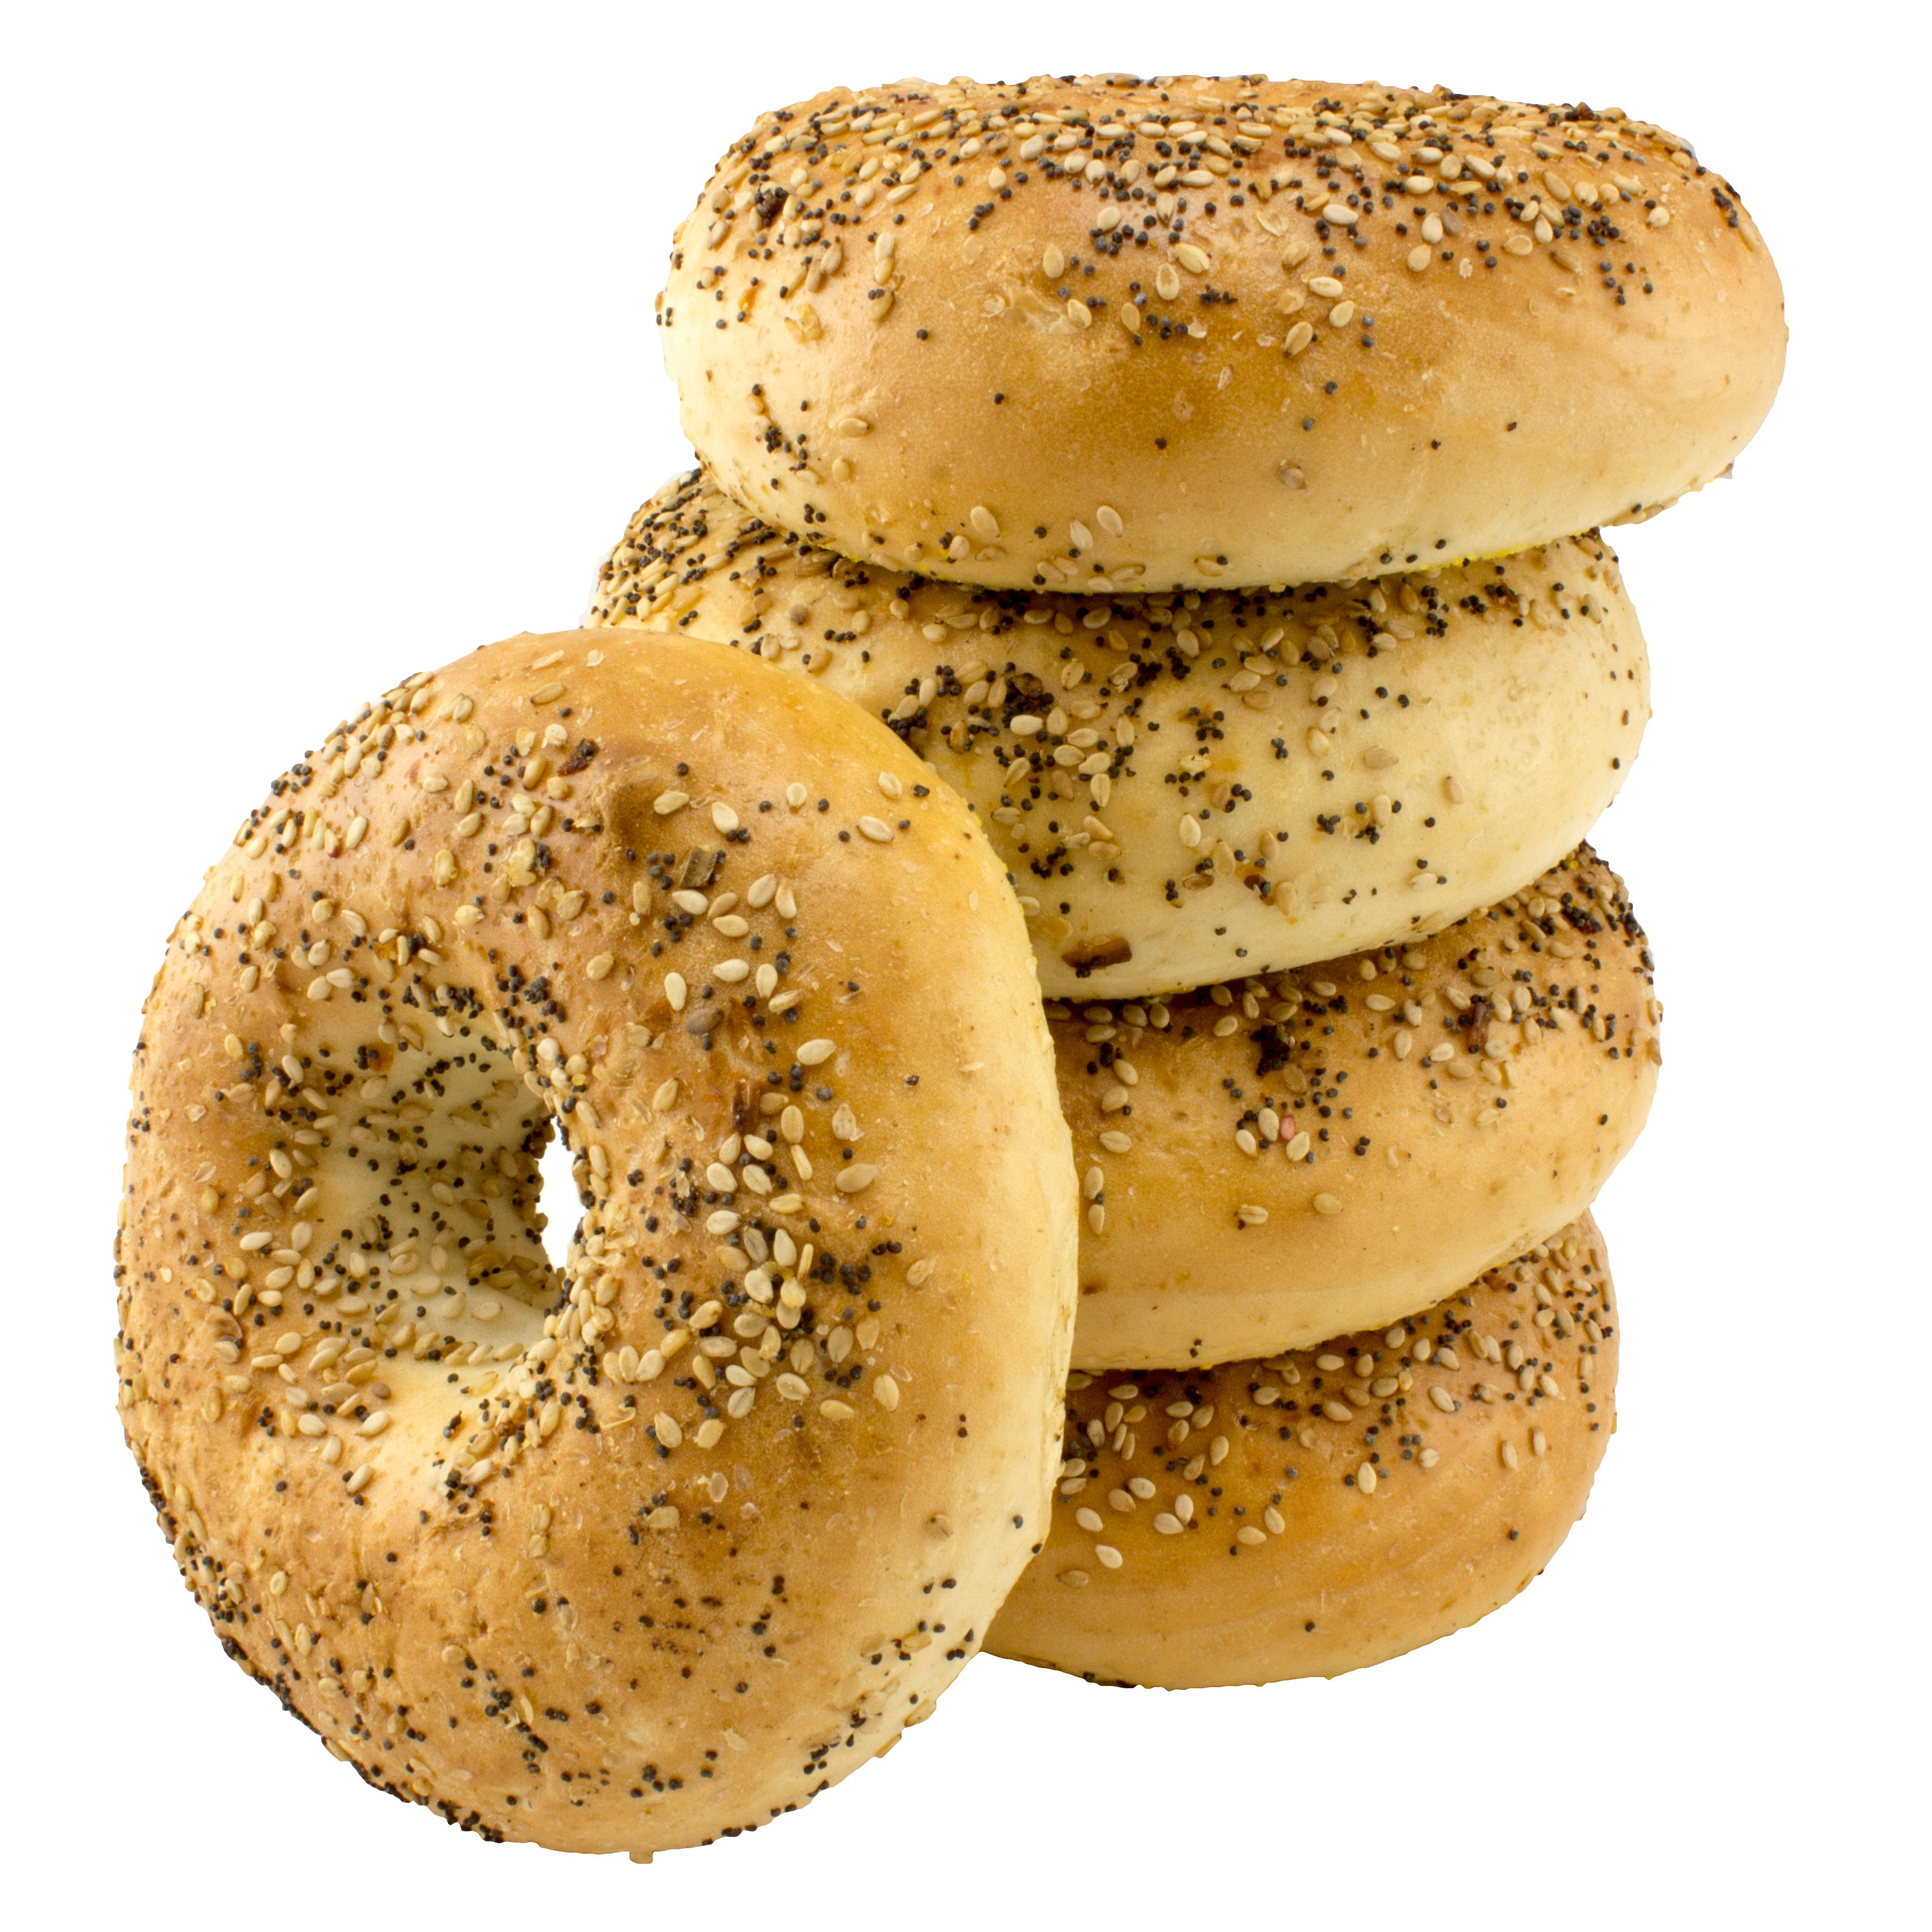 What are the total calories, fat and fiber in a hot dog bagel?